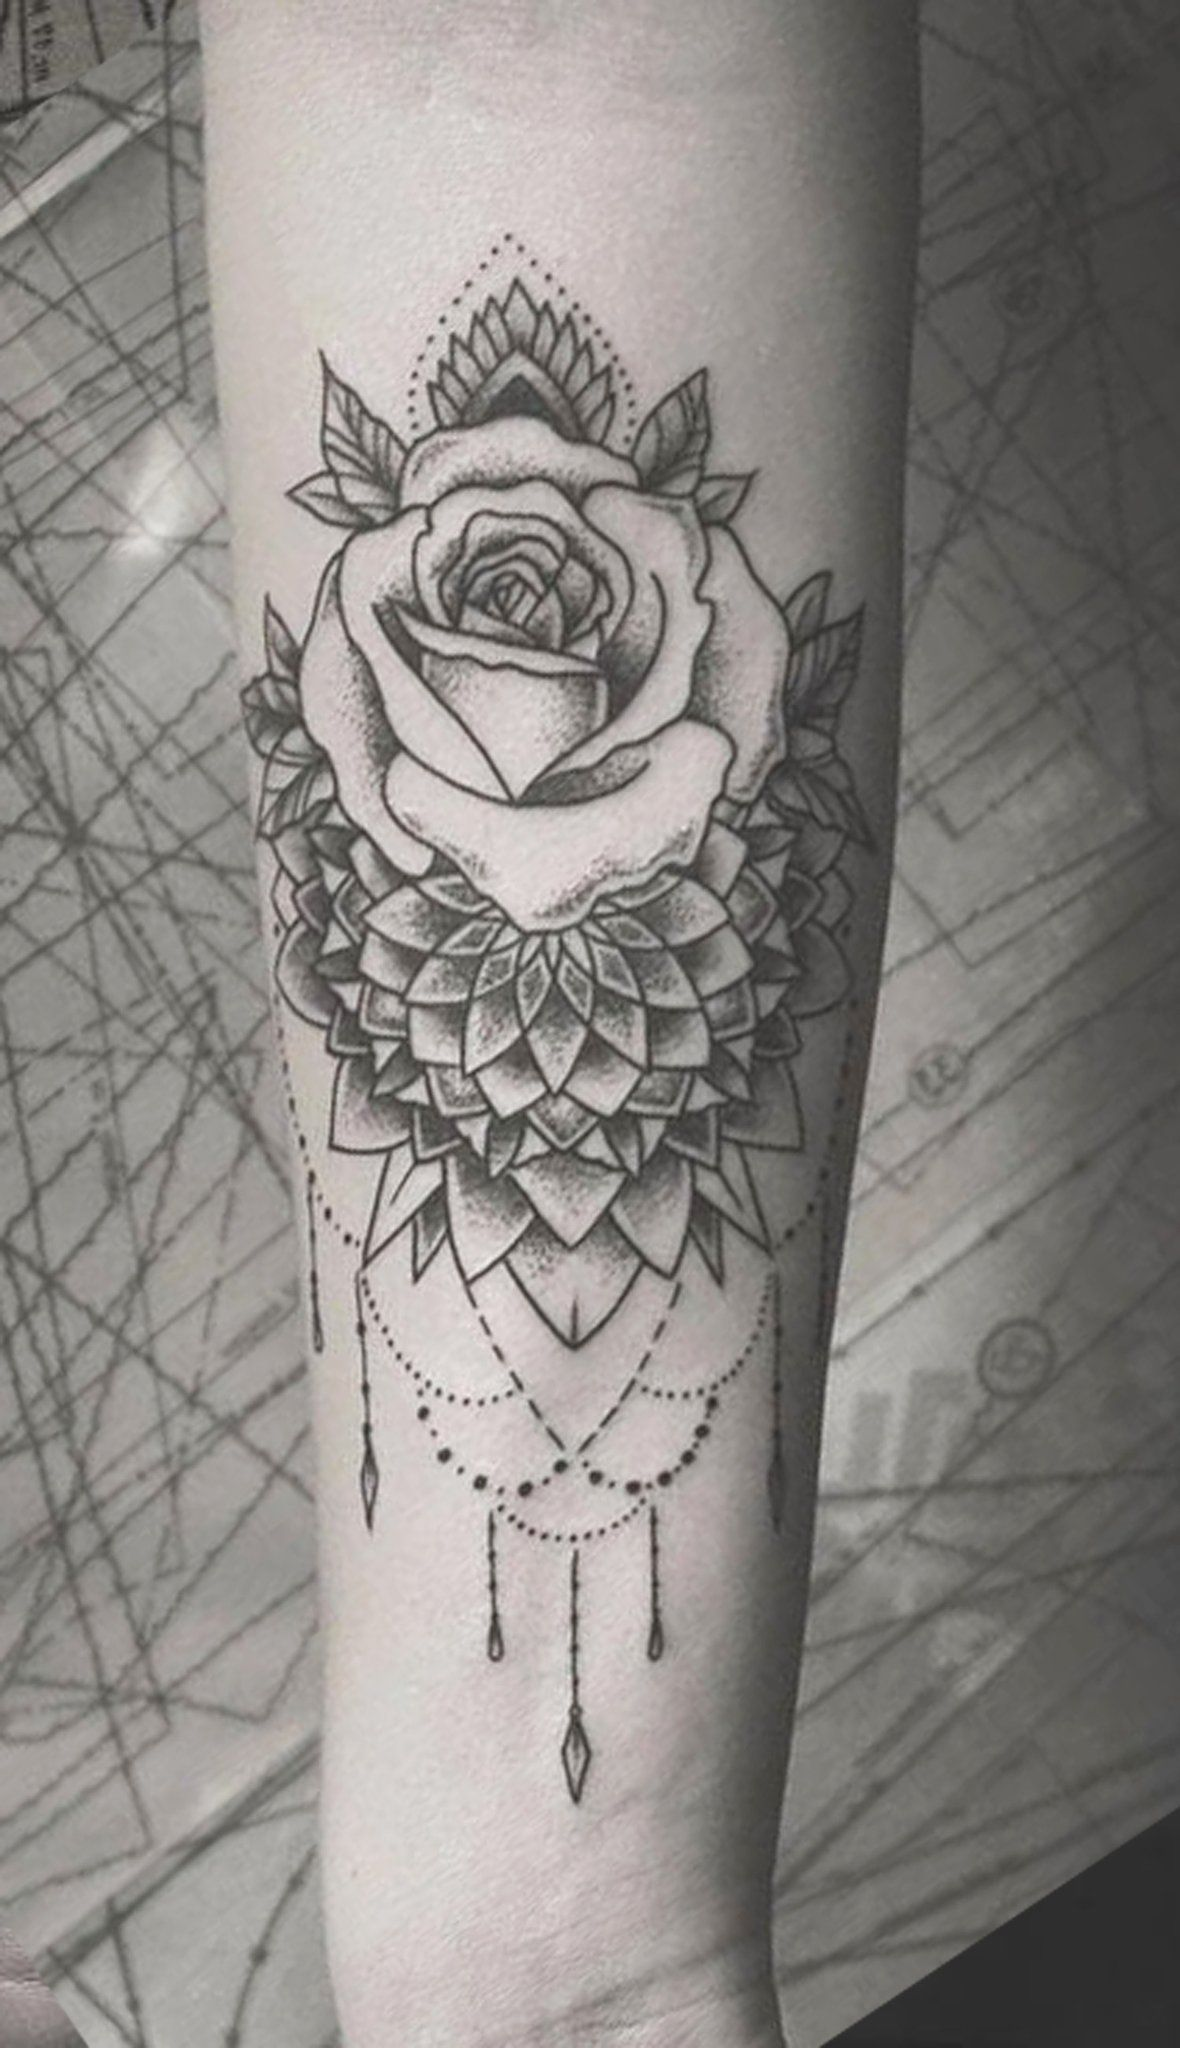 Boho Black Rose Chandelier Forearm Tattoo Ideas For Women Mandala Lotus Flower Arm Slee Tattoos For Women Half Sleeve Sleeve Tattoos For Women Sleeve Tattoos